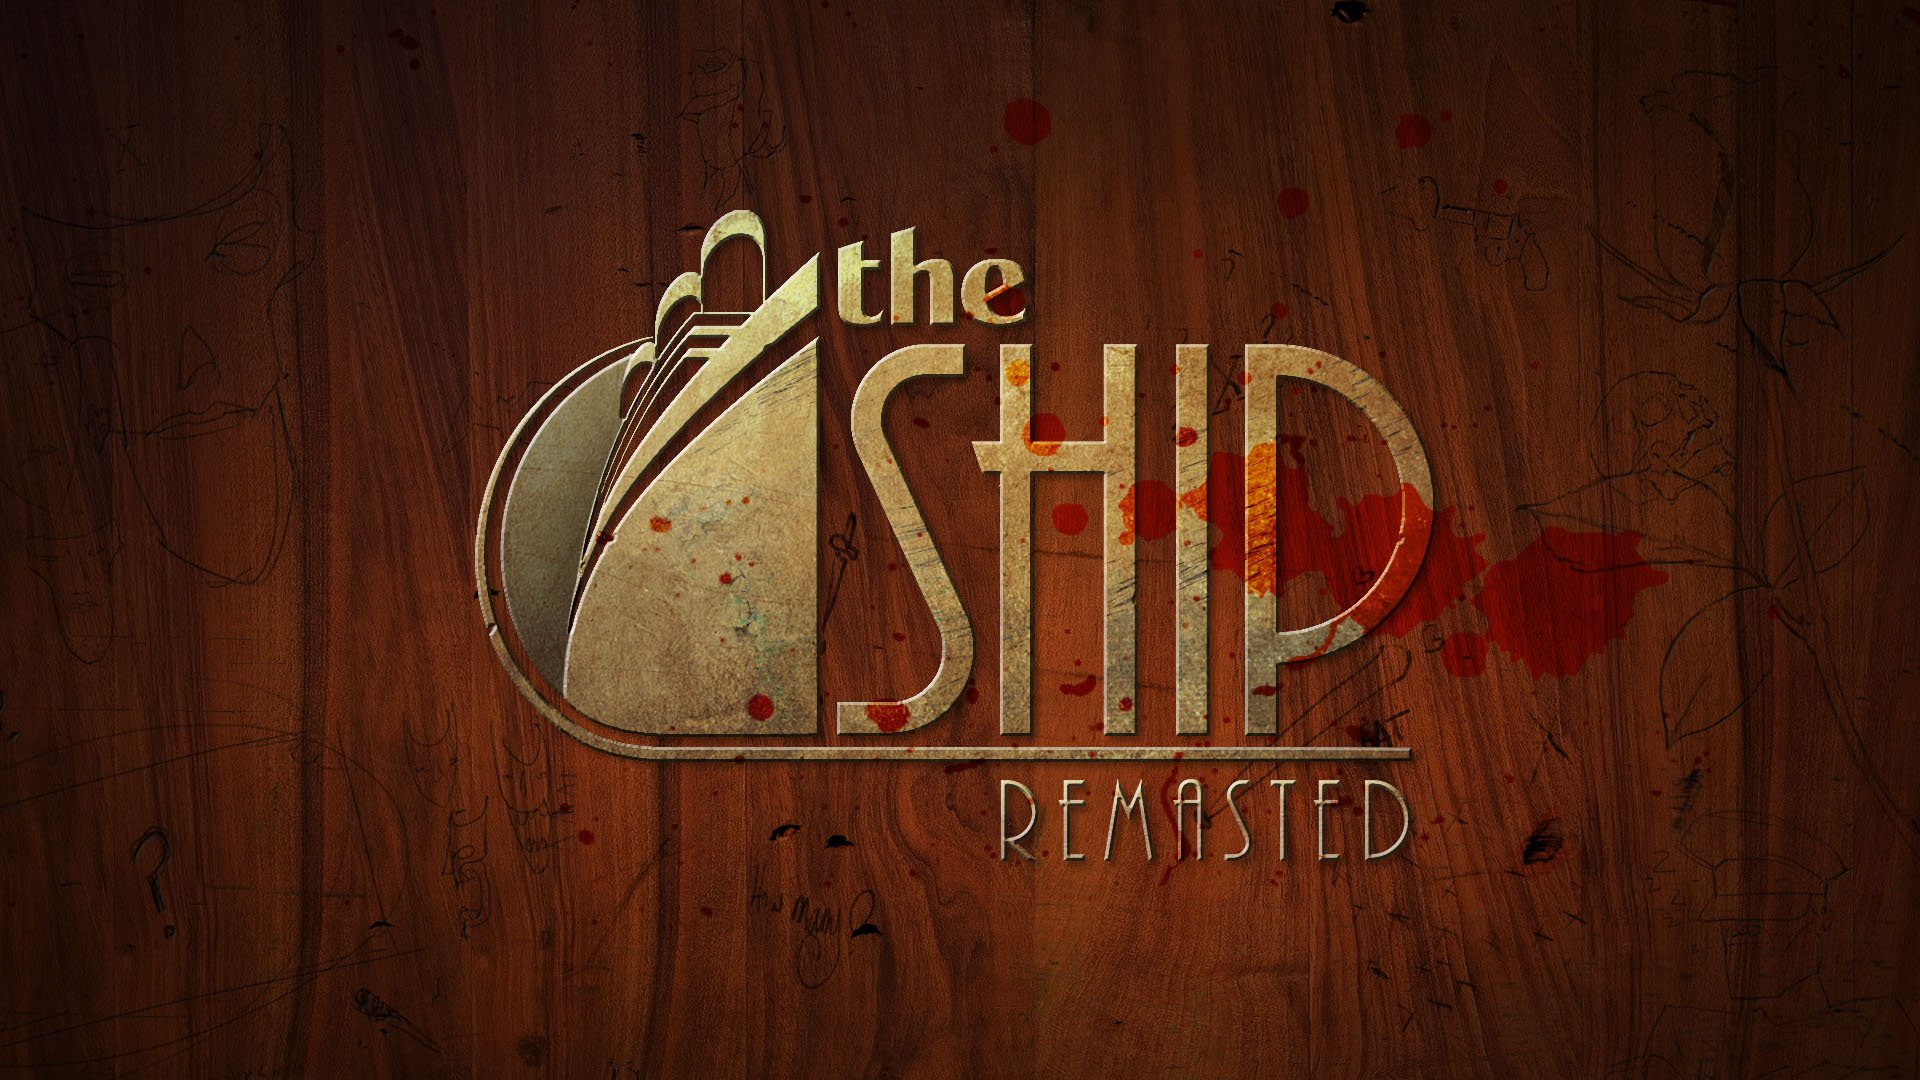 The Ship: Remastered